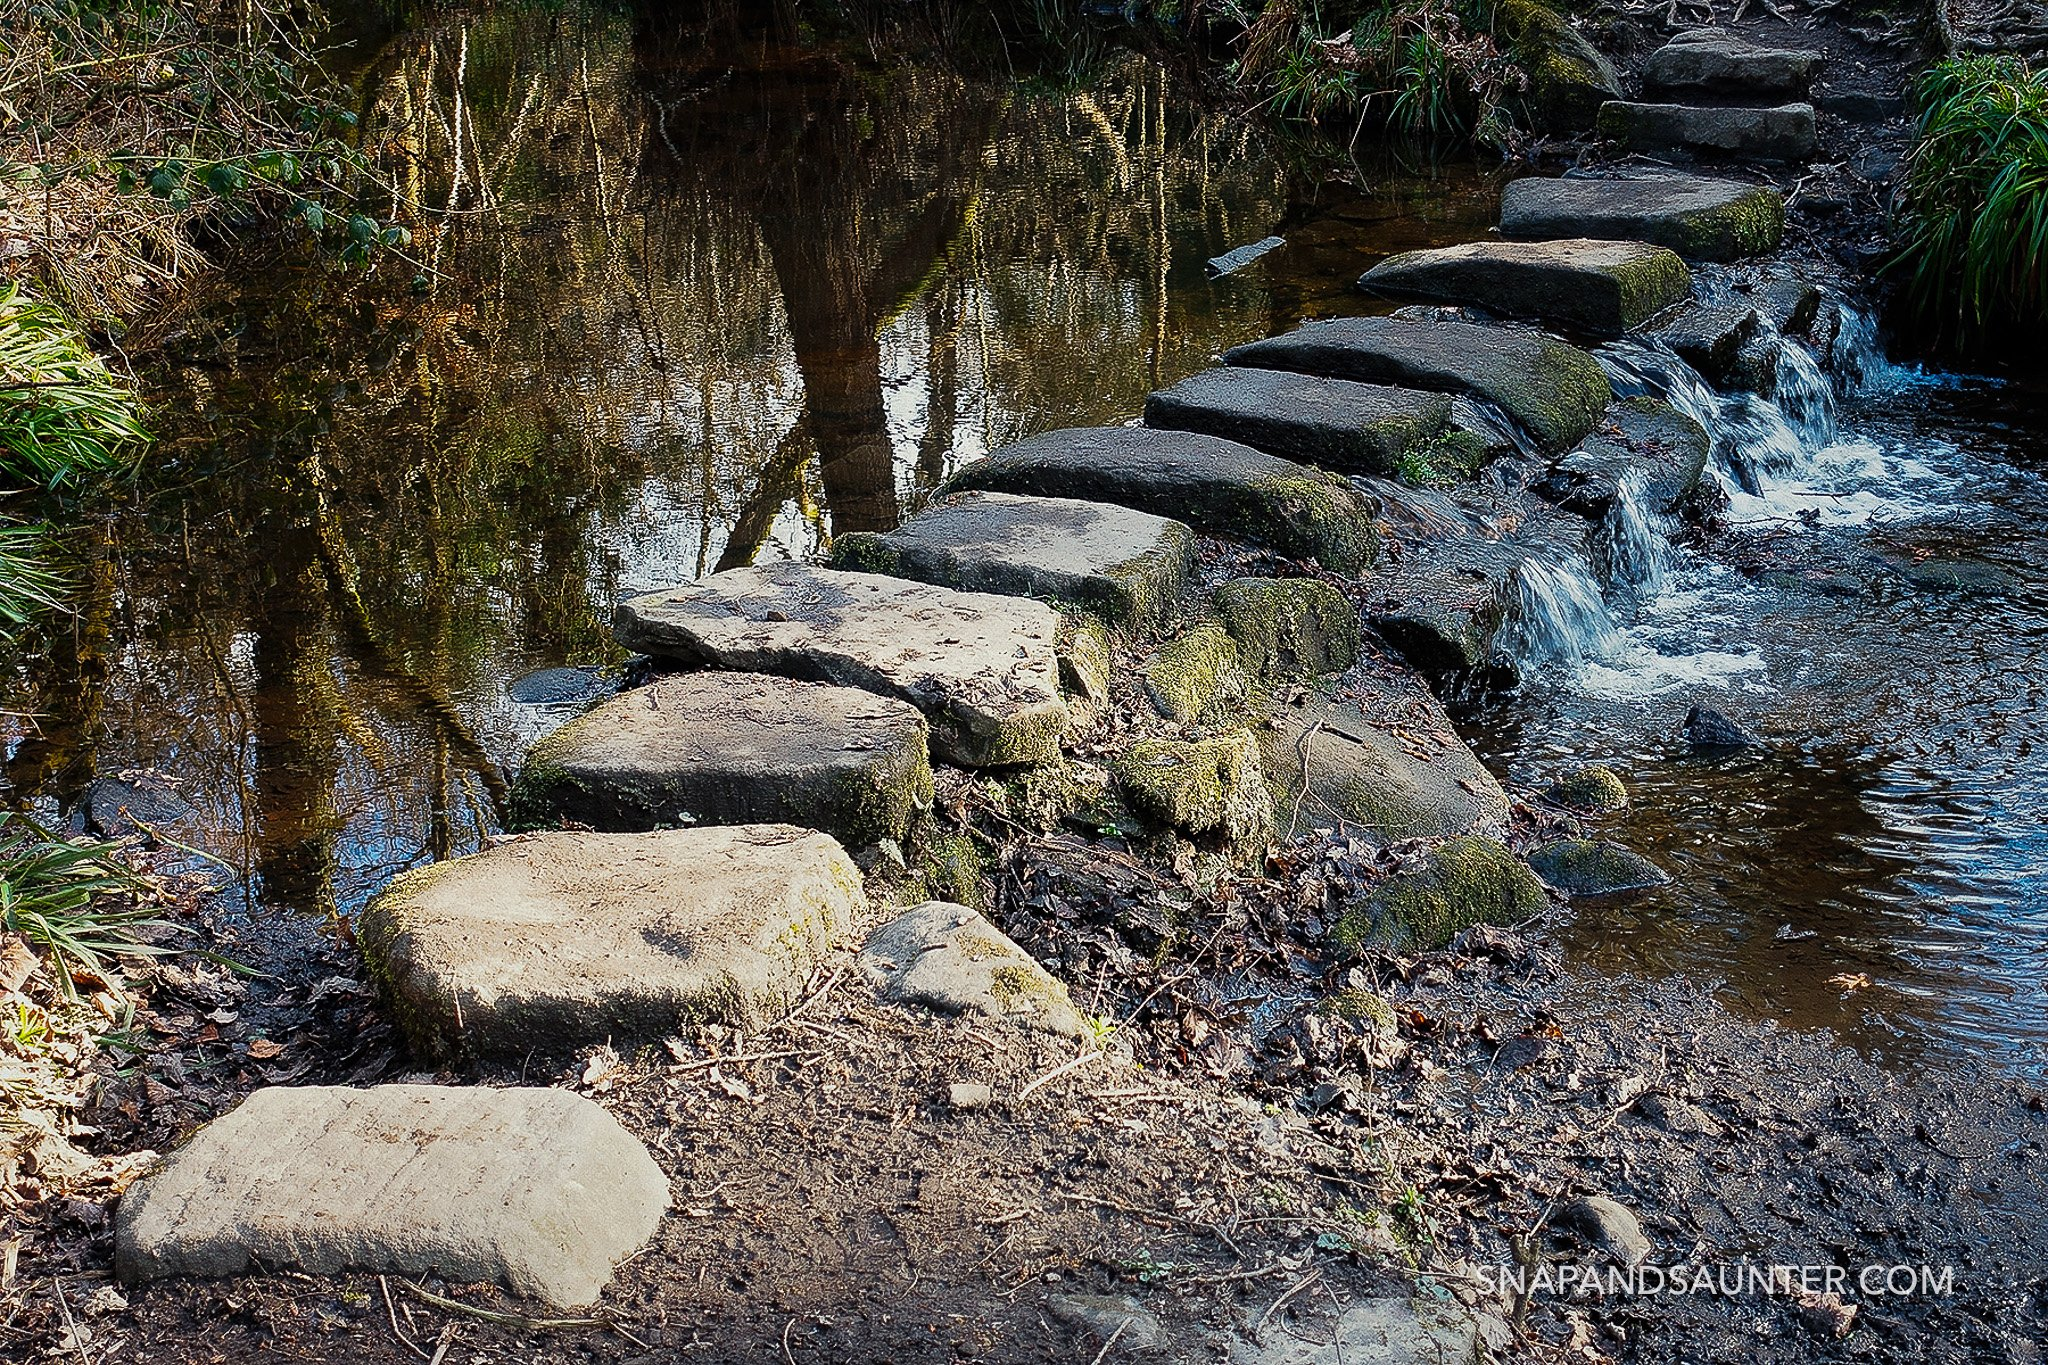 Stepping Stones at Rivelin Valley in Sheffield